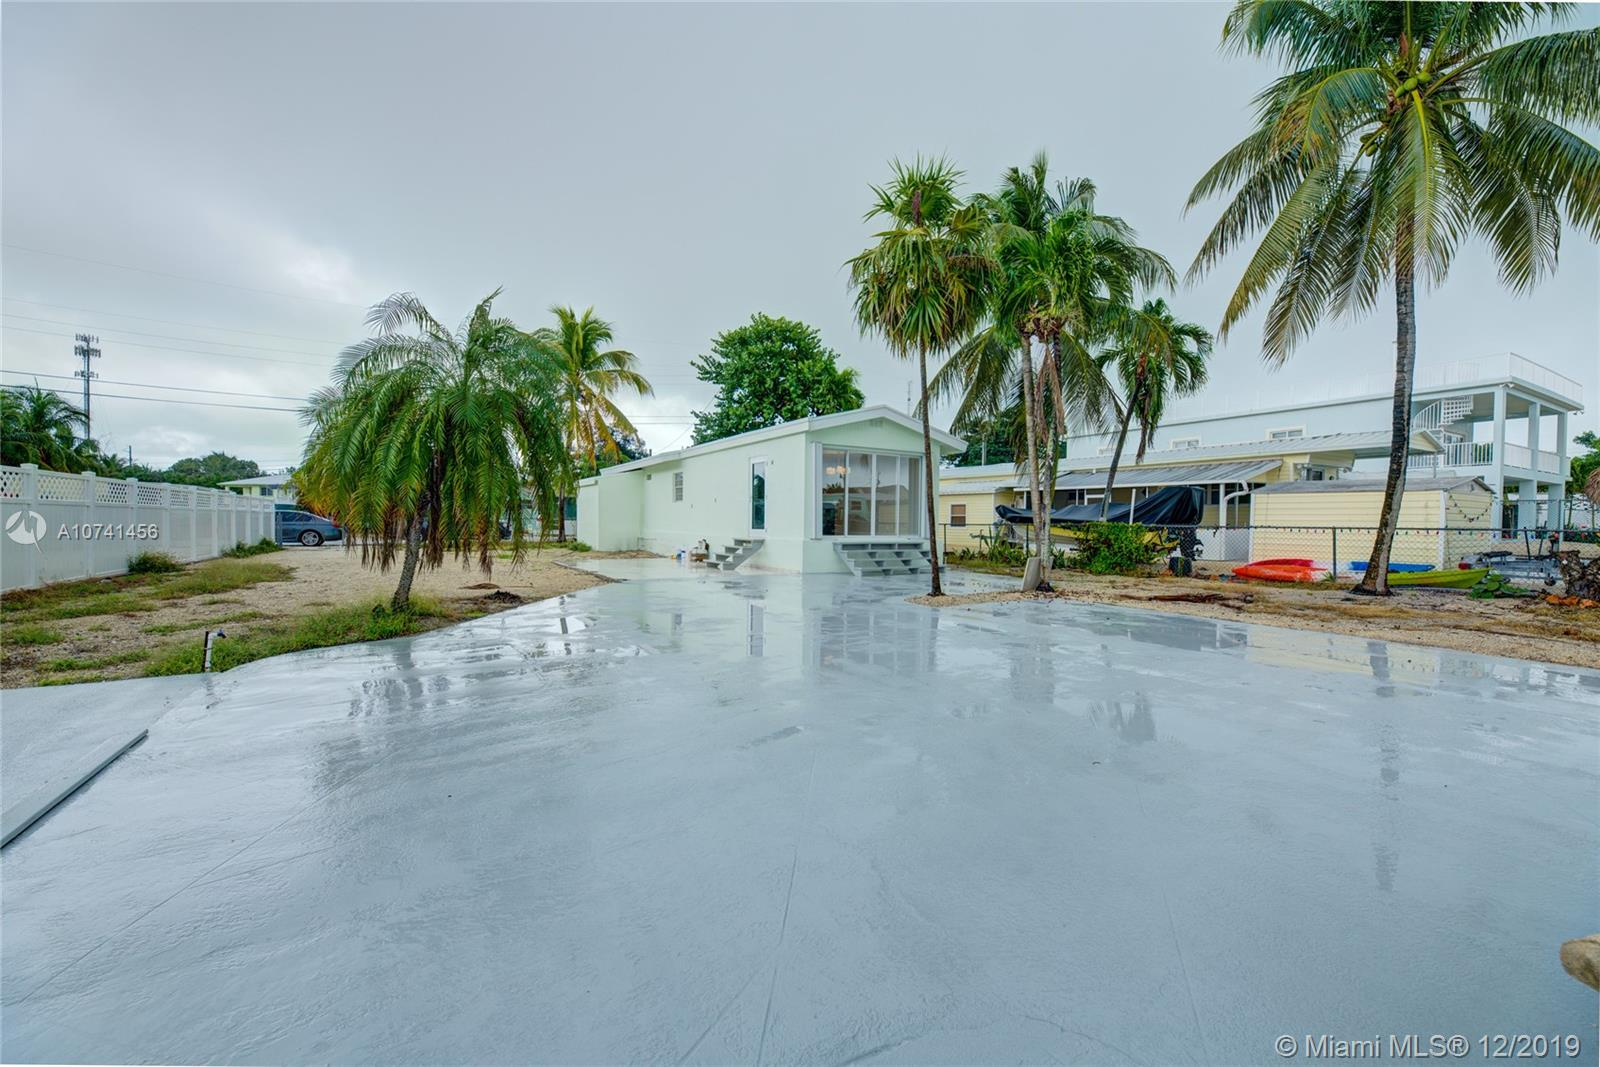 314 Windley Rd, Key Largo, FL 33037 - Key Largo, FL real estate listing